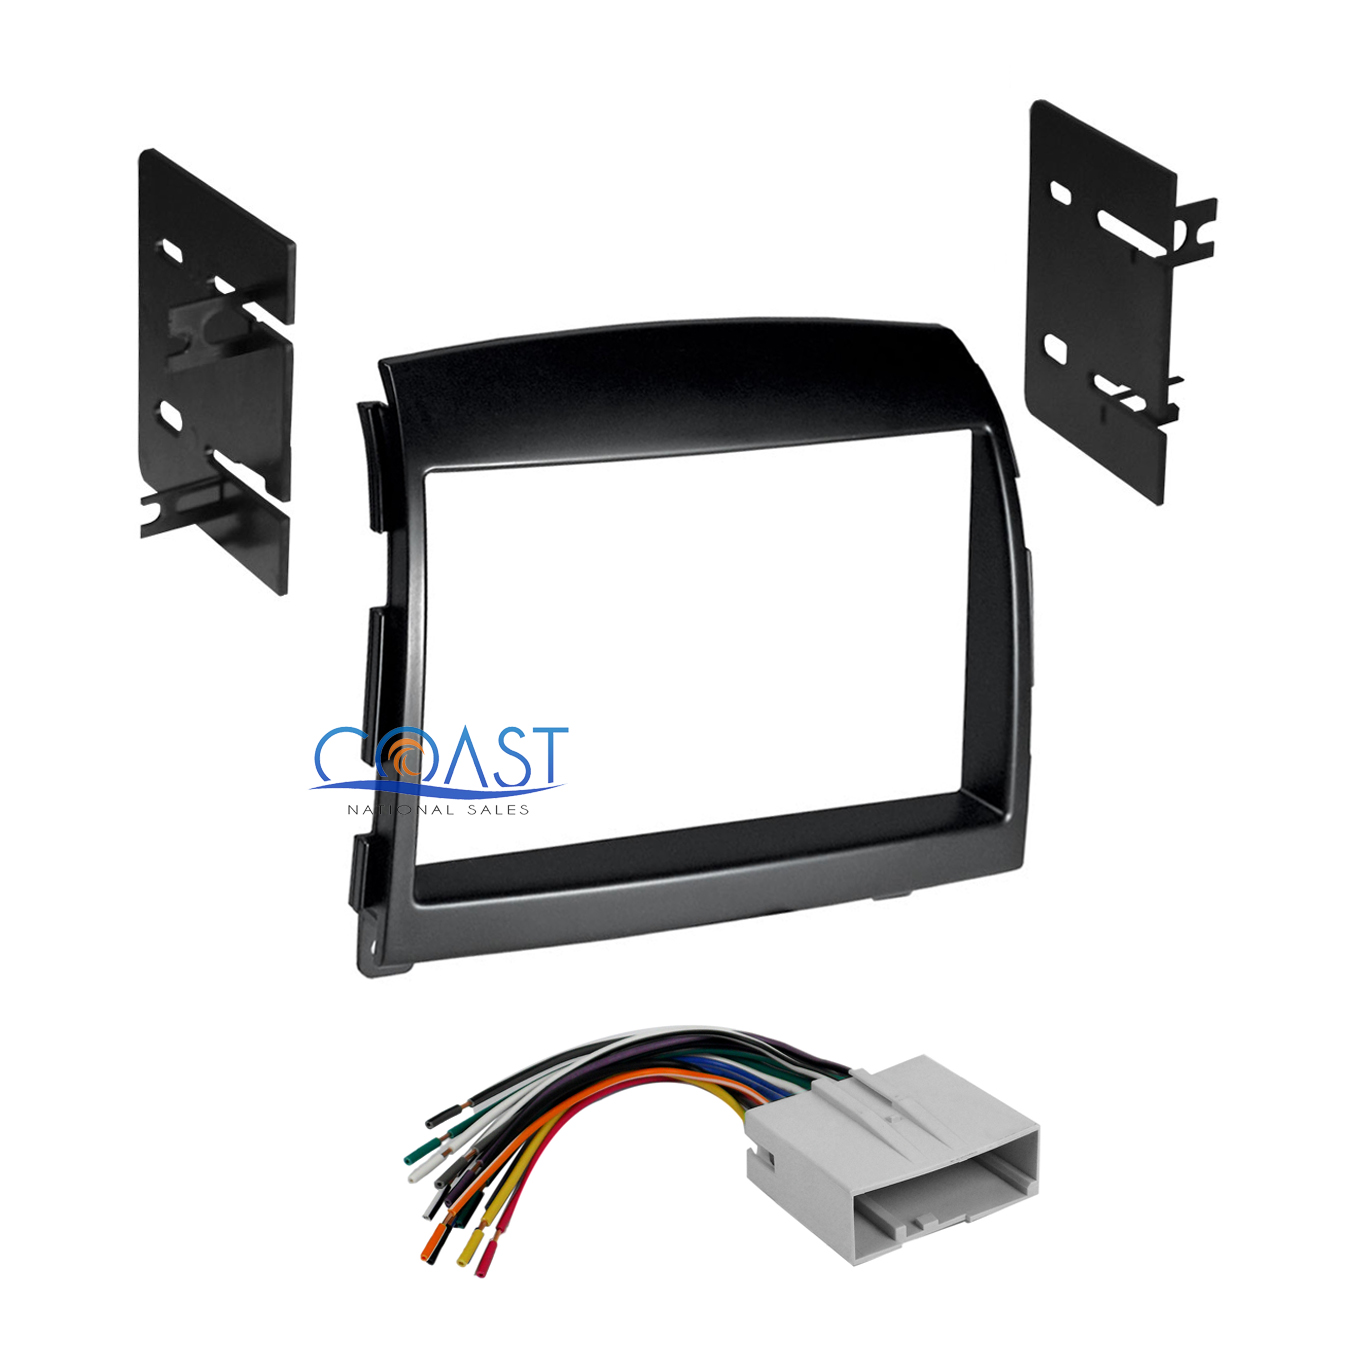 car radio stereo double din dash kit wire harness for 2006 2008 2010 Honda Civic Wiring Harness car radio stereo double din dash kit wire harness for 2006 2008 hyundai sonata